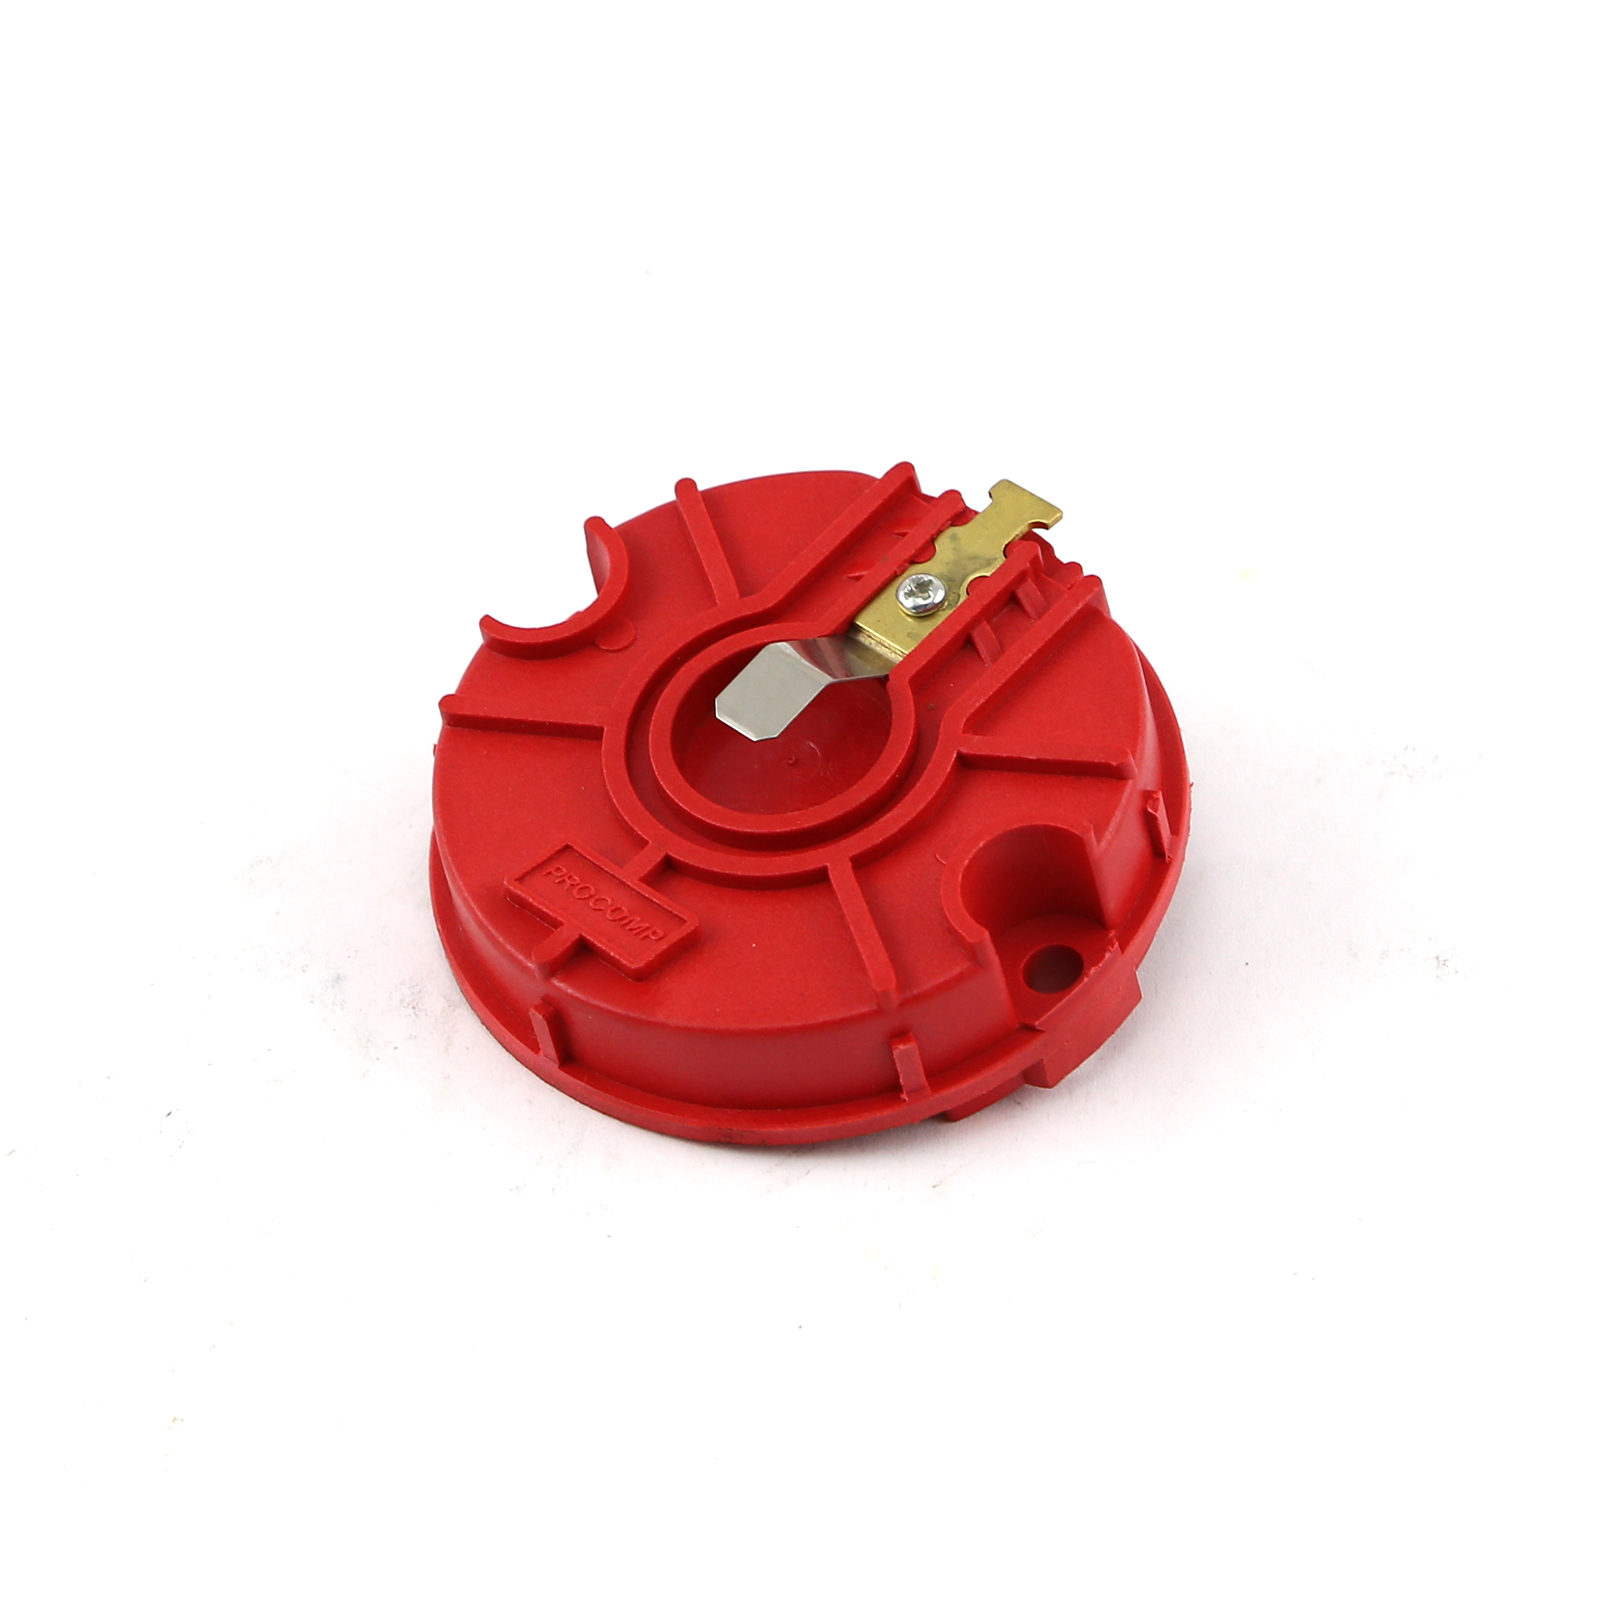 Marine Series Distributor Rotor Button Only